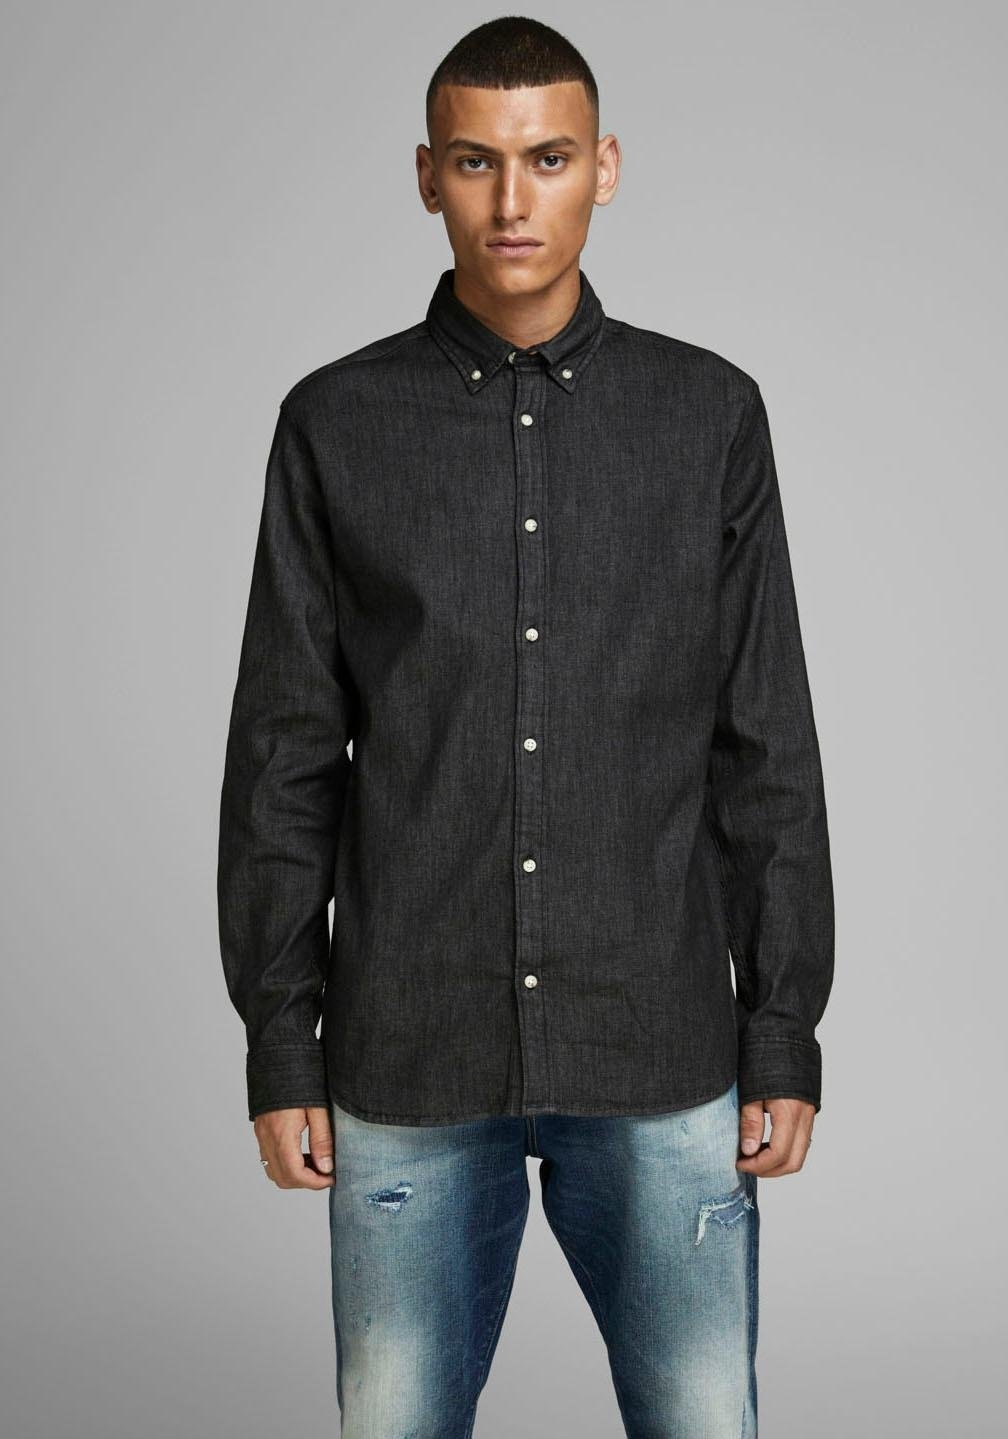 Jack & Jones jeansoverhemd »LEON STRETCH DENIM SHIRT« - gratis ruilen op otto.nl